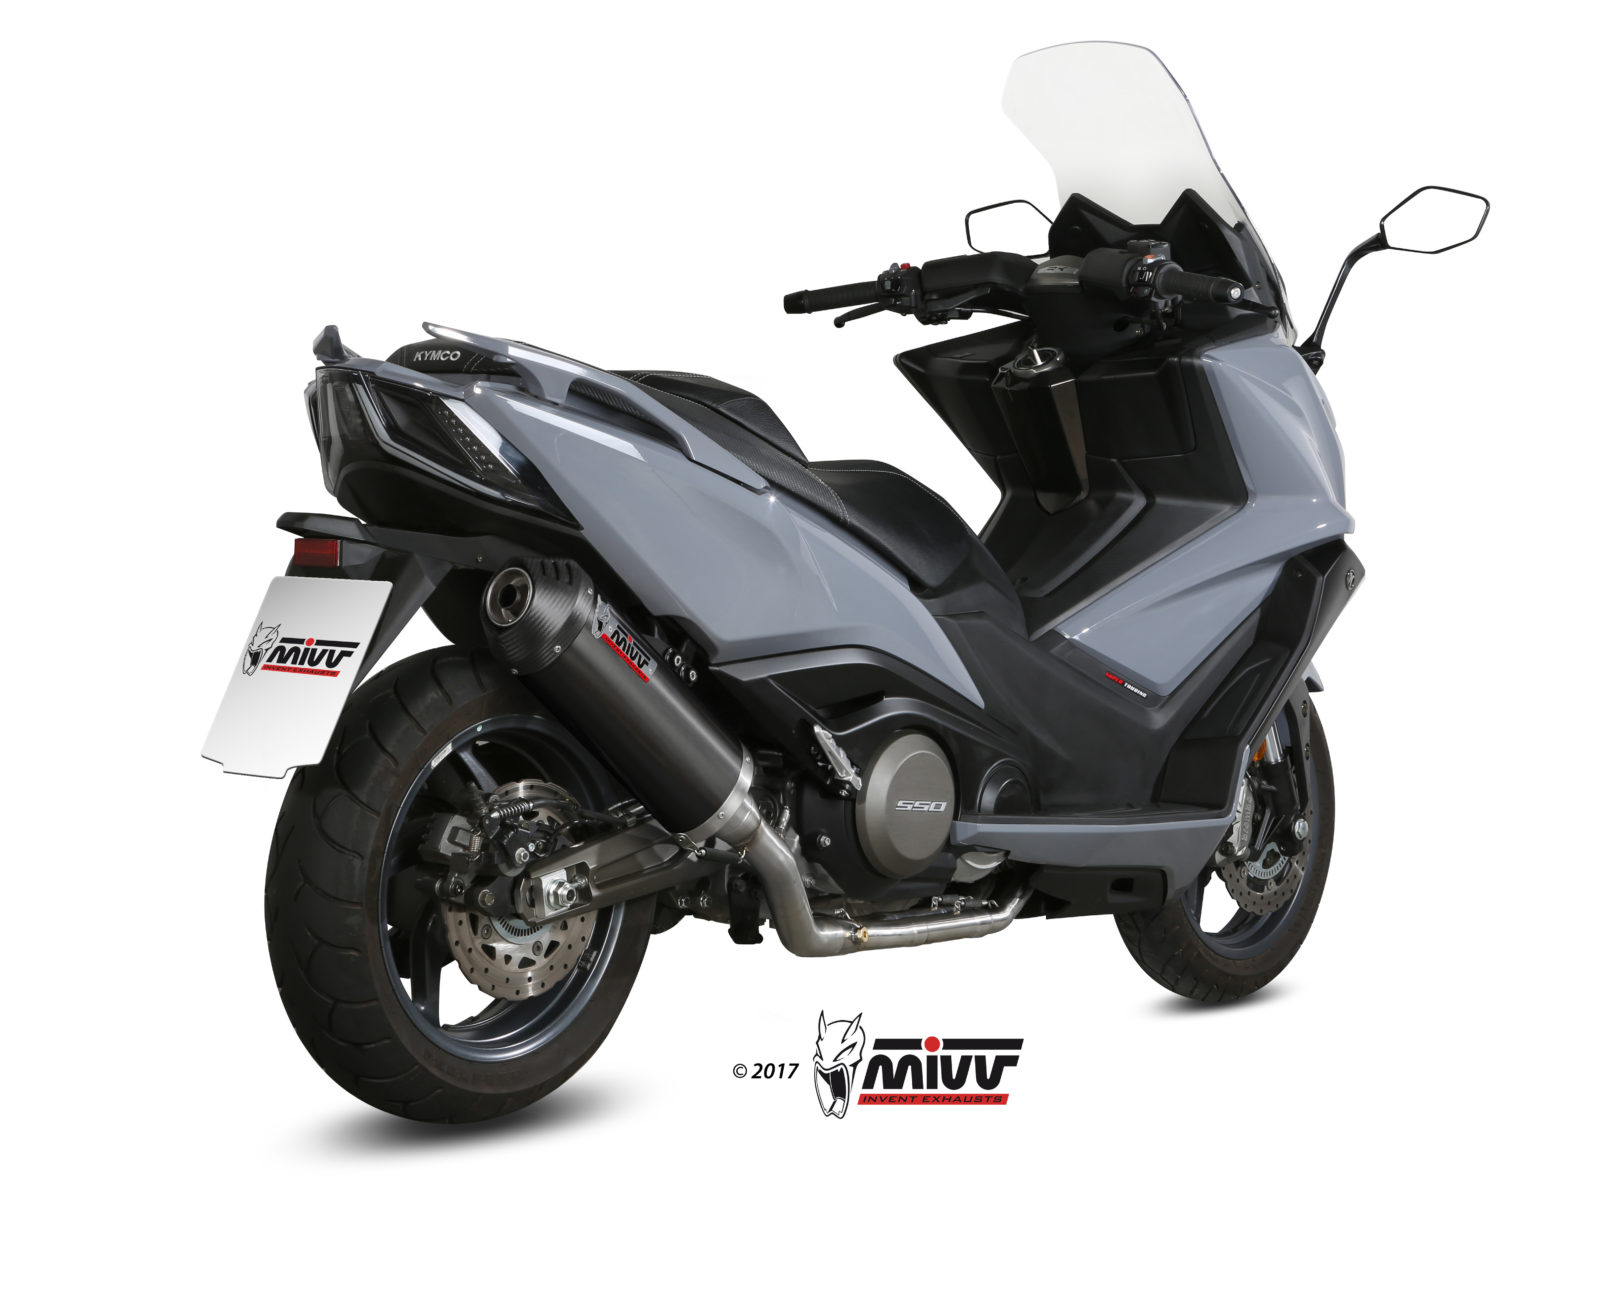 KYMCO AK 550 Exhaust Mivv Oval Black stainless steel with Carbon cap O.009.LVC